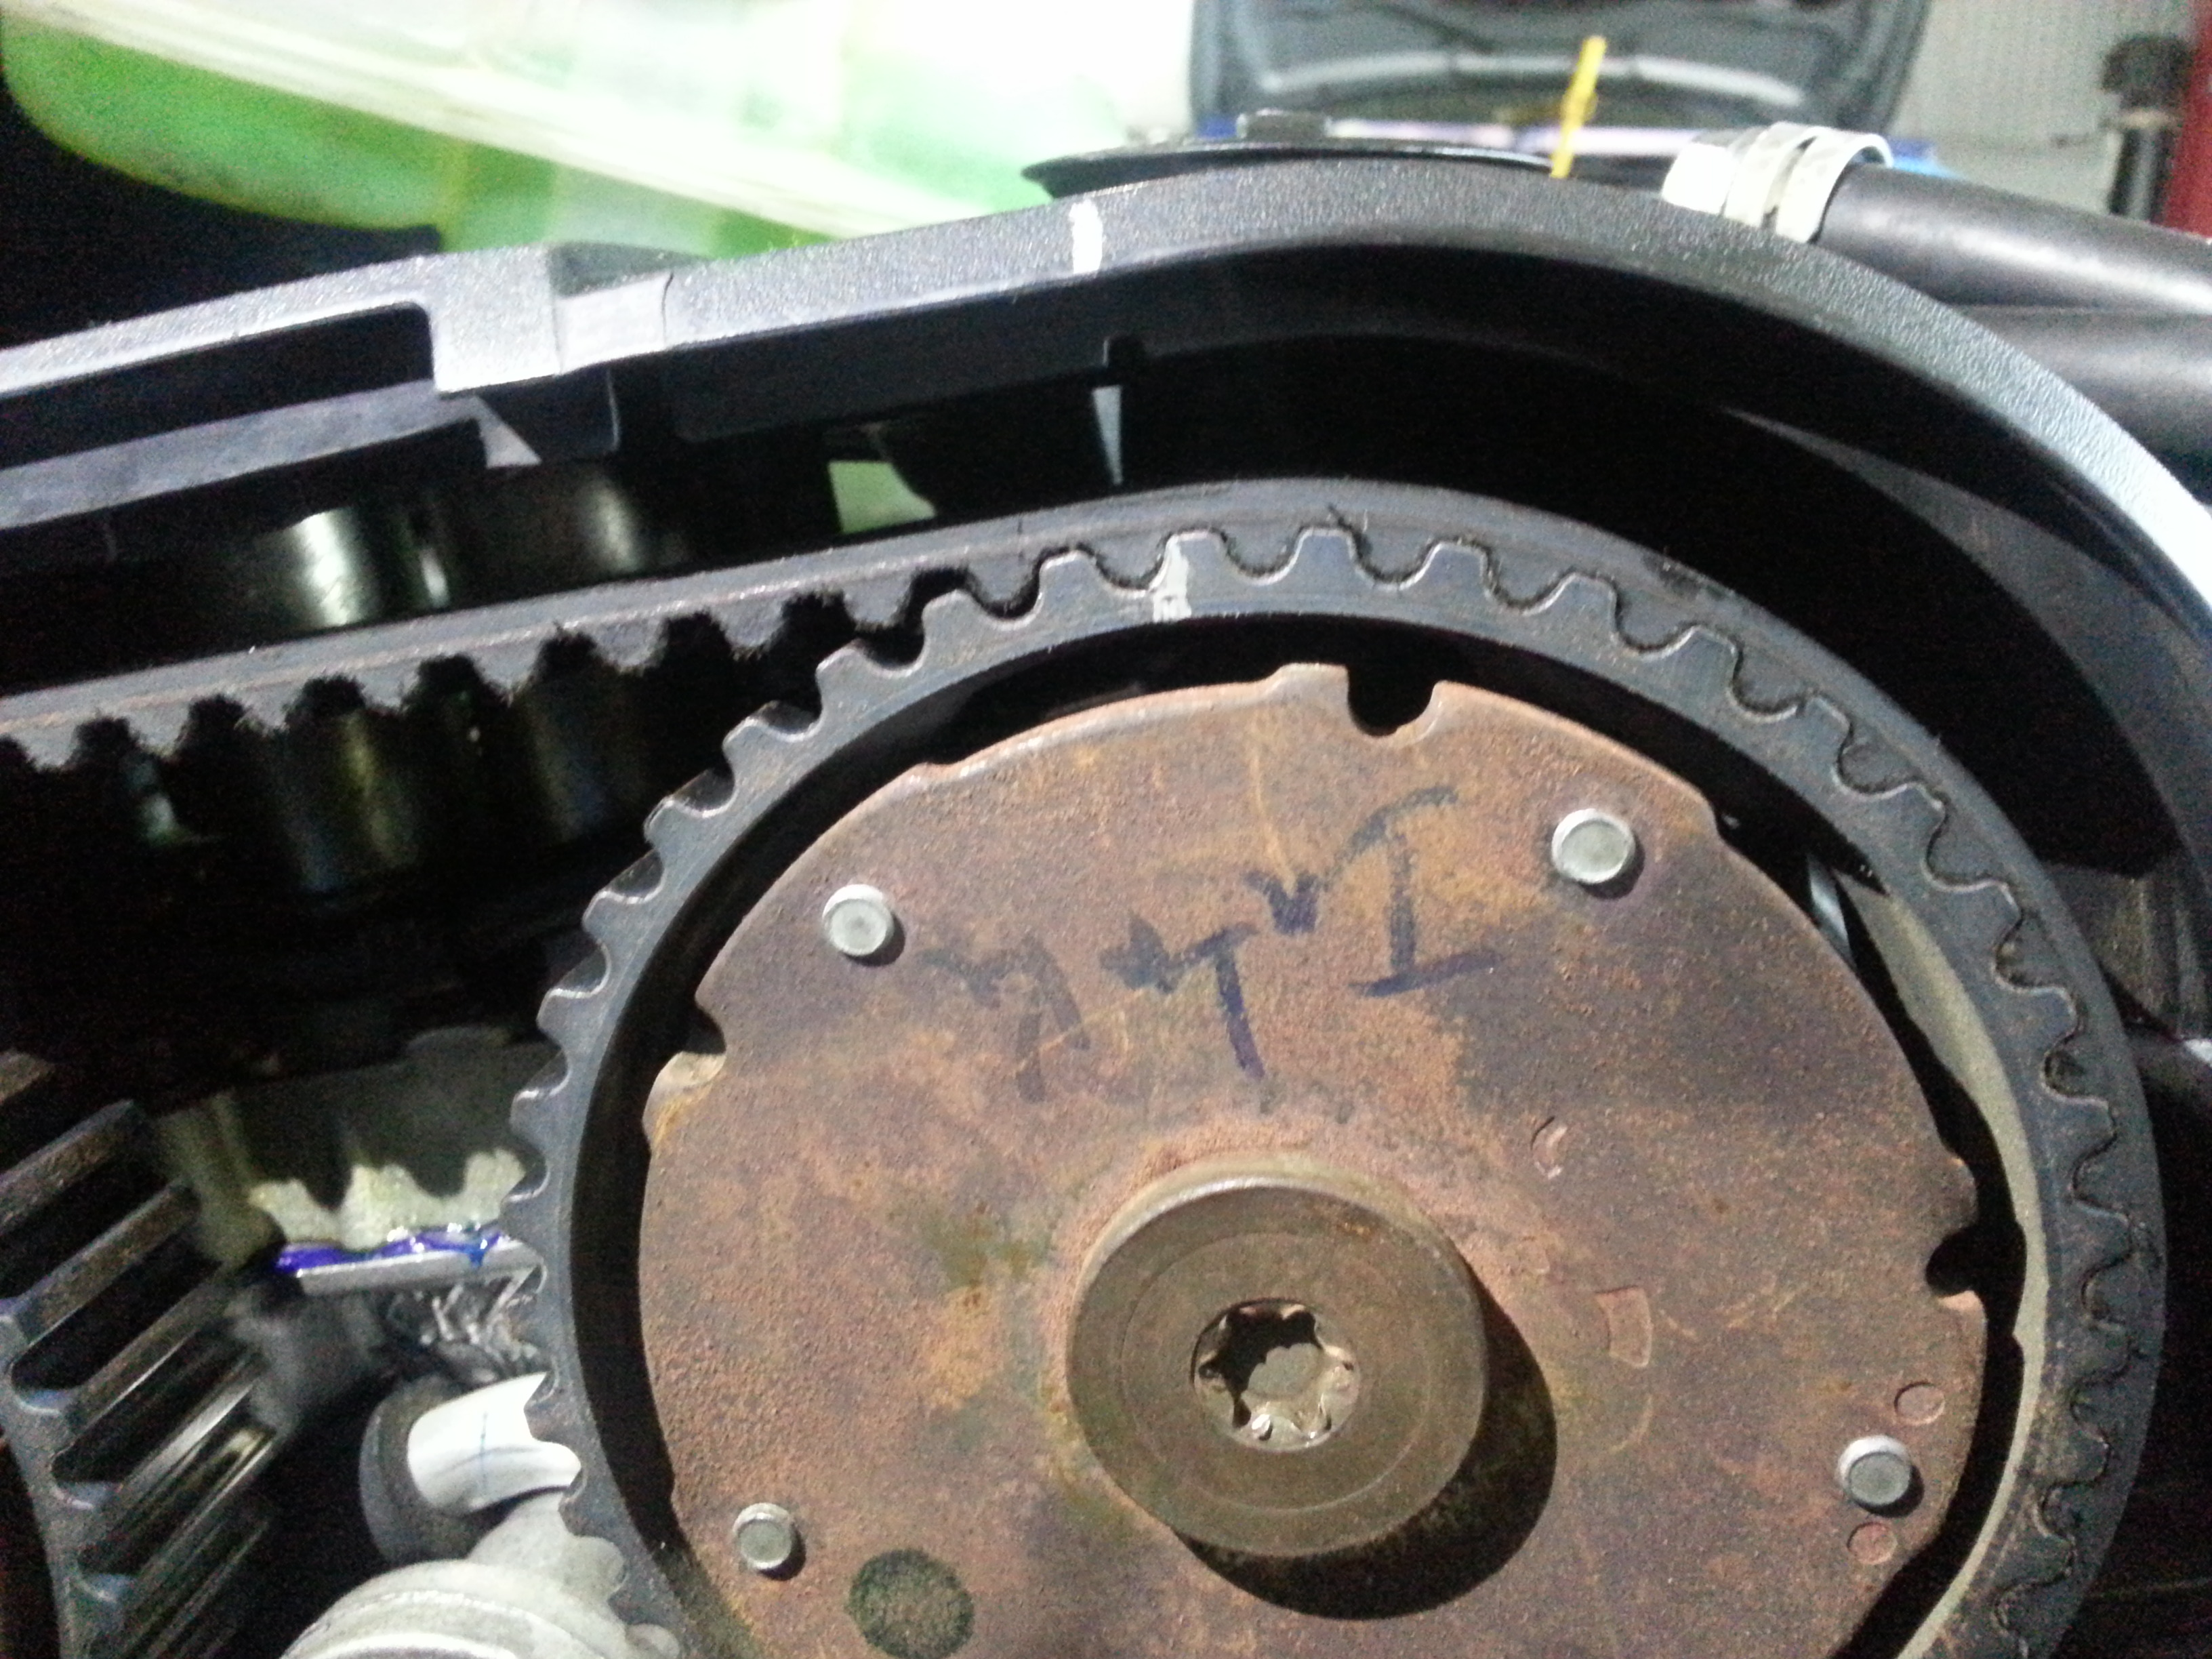 2006 Volvo V50 Timing Belt Replacement – Wonderful Image Gallery